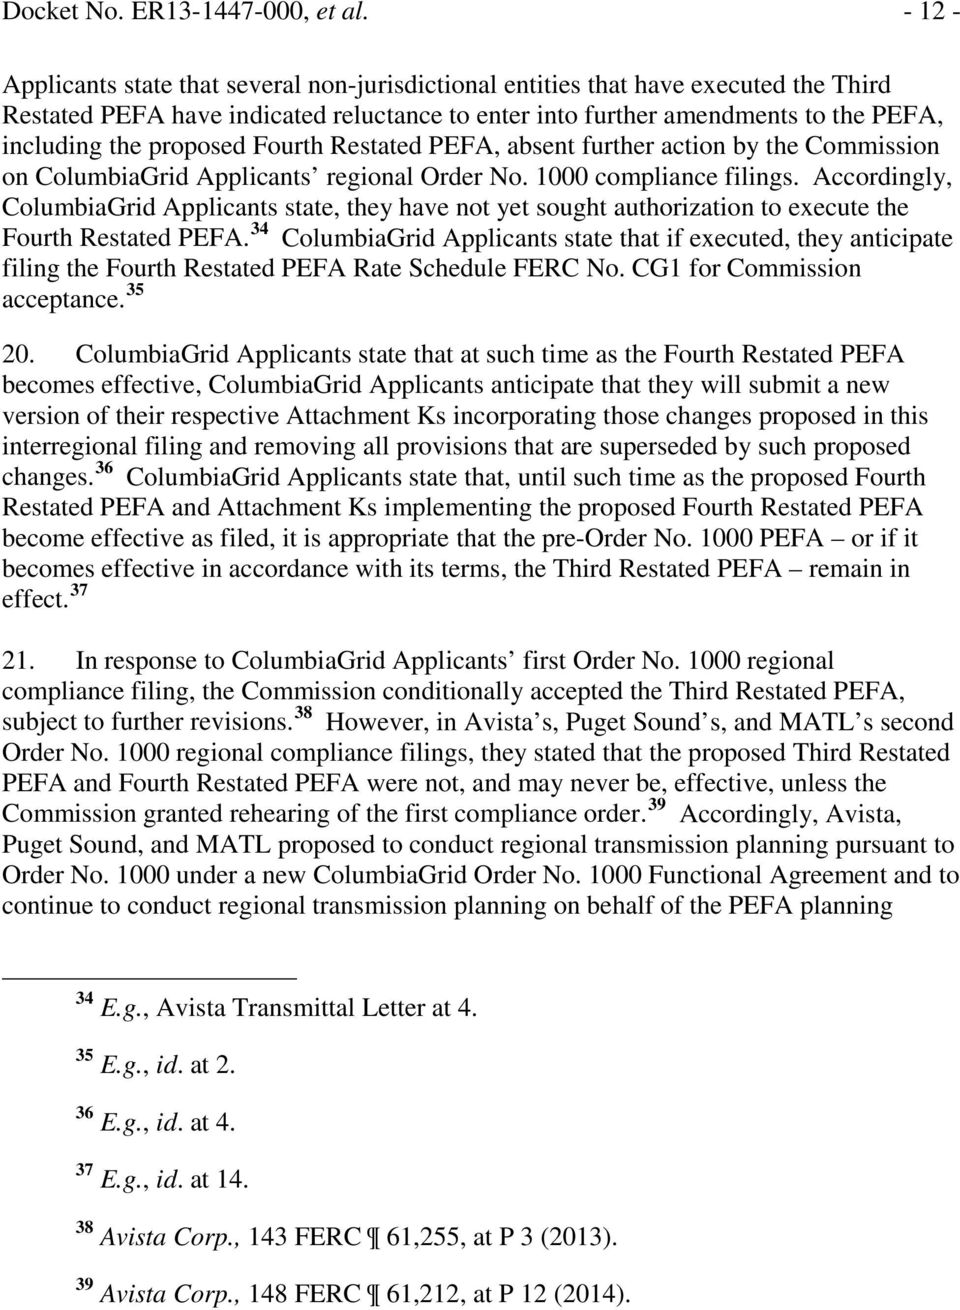 proposed Fourth Restated PEFA, absent further action by the Commission on ColumbiaGrid Applicants regional Order No. 1000 compliance filings.